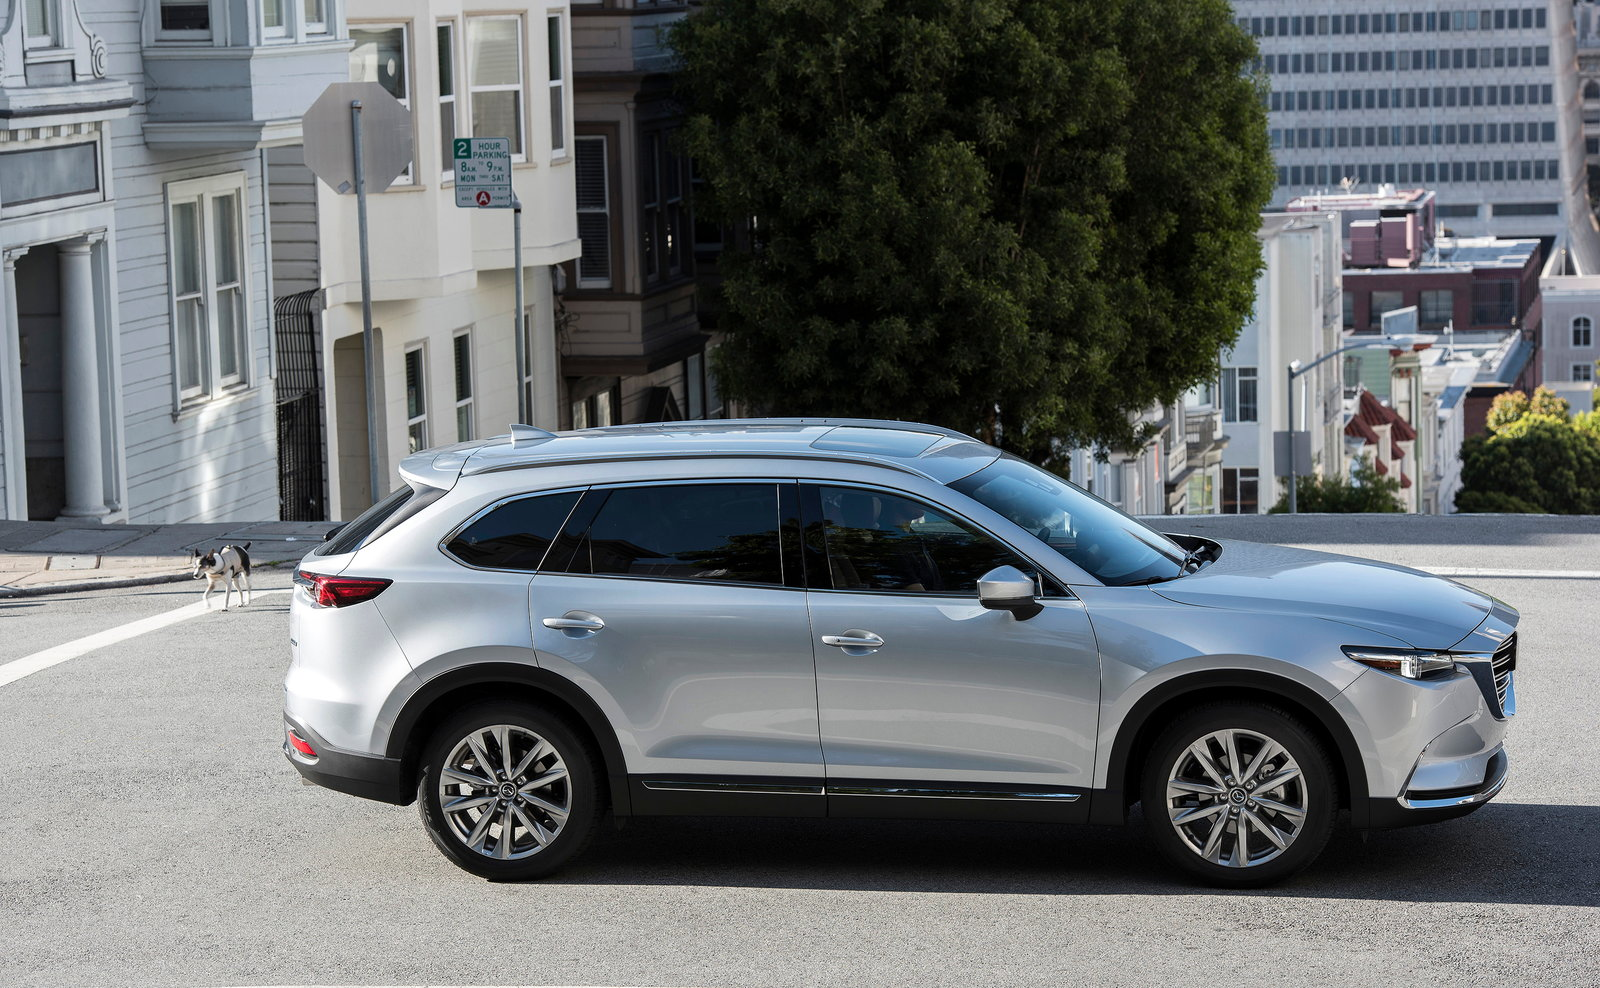 2018 Mazda CX-9 Deals, Prices, Incentives & Leases ...